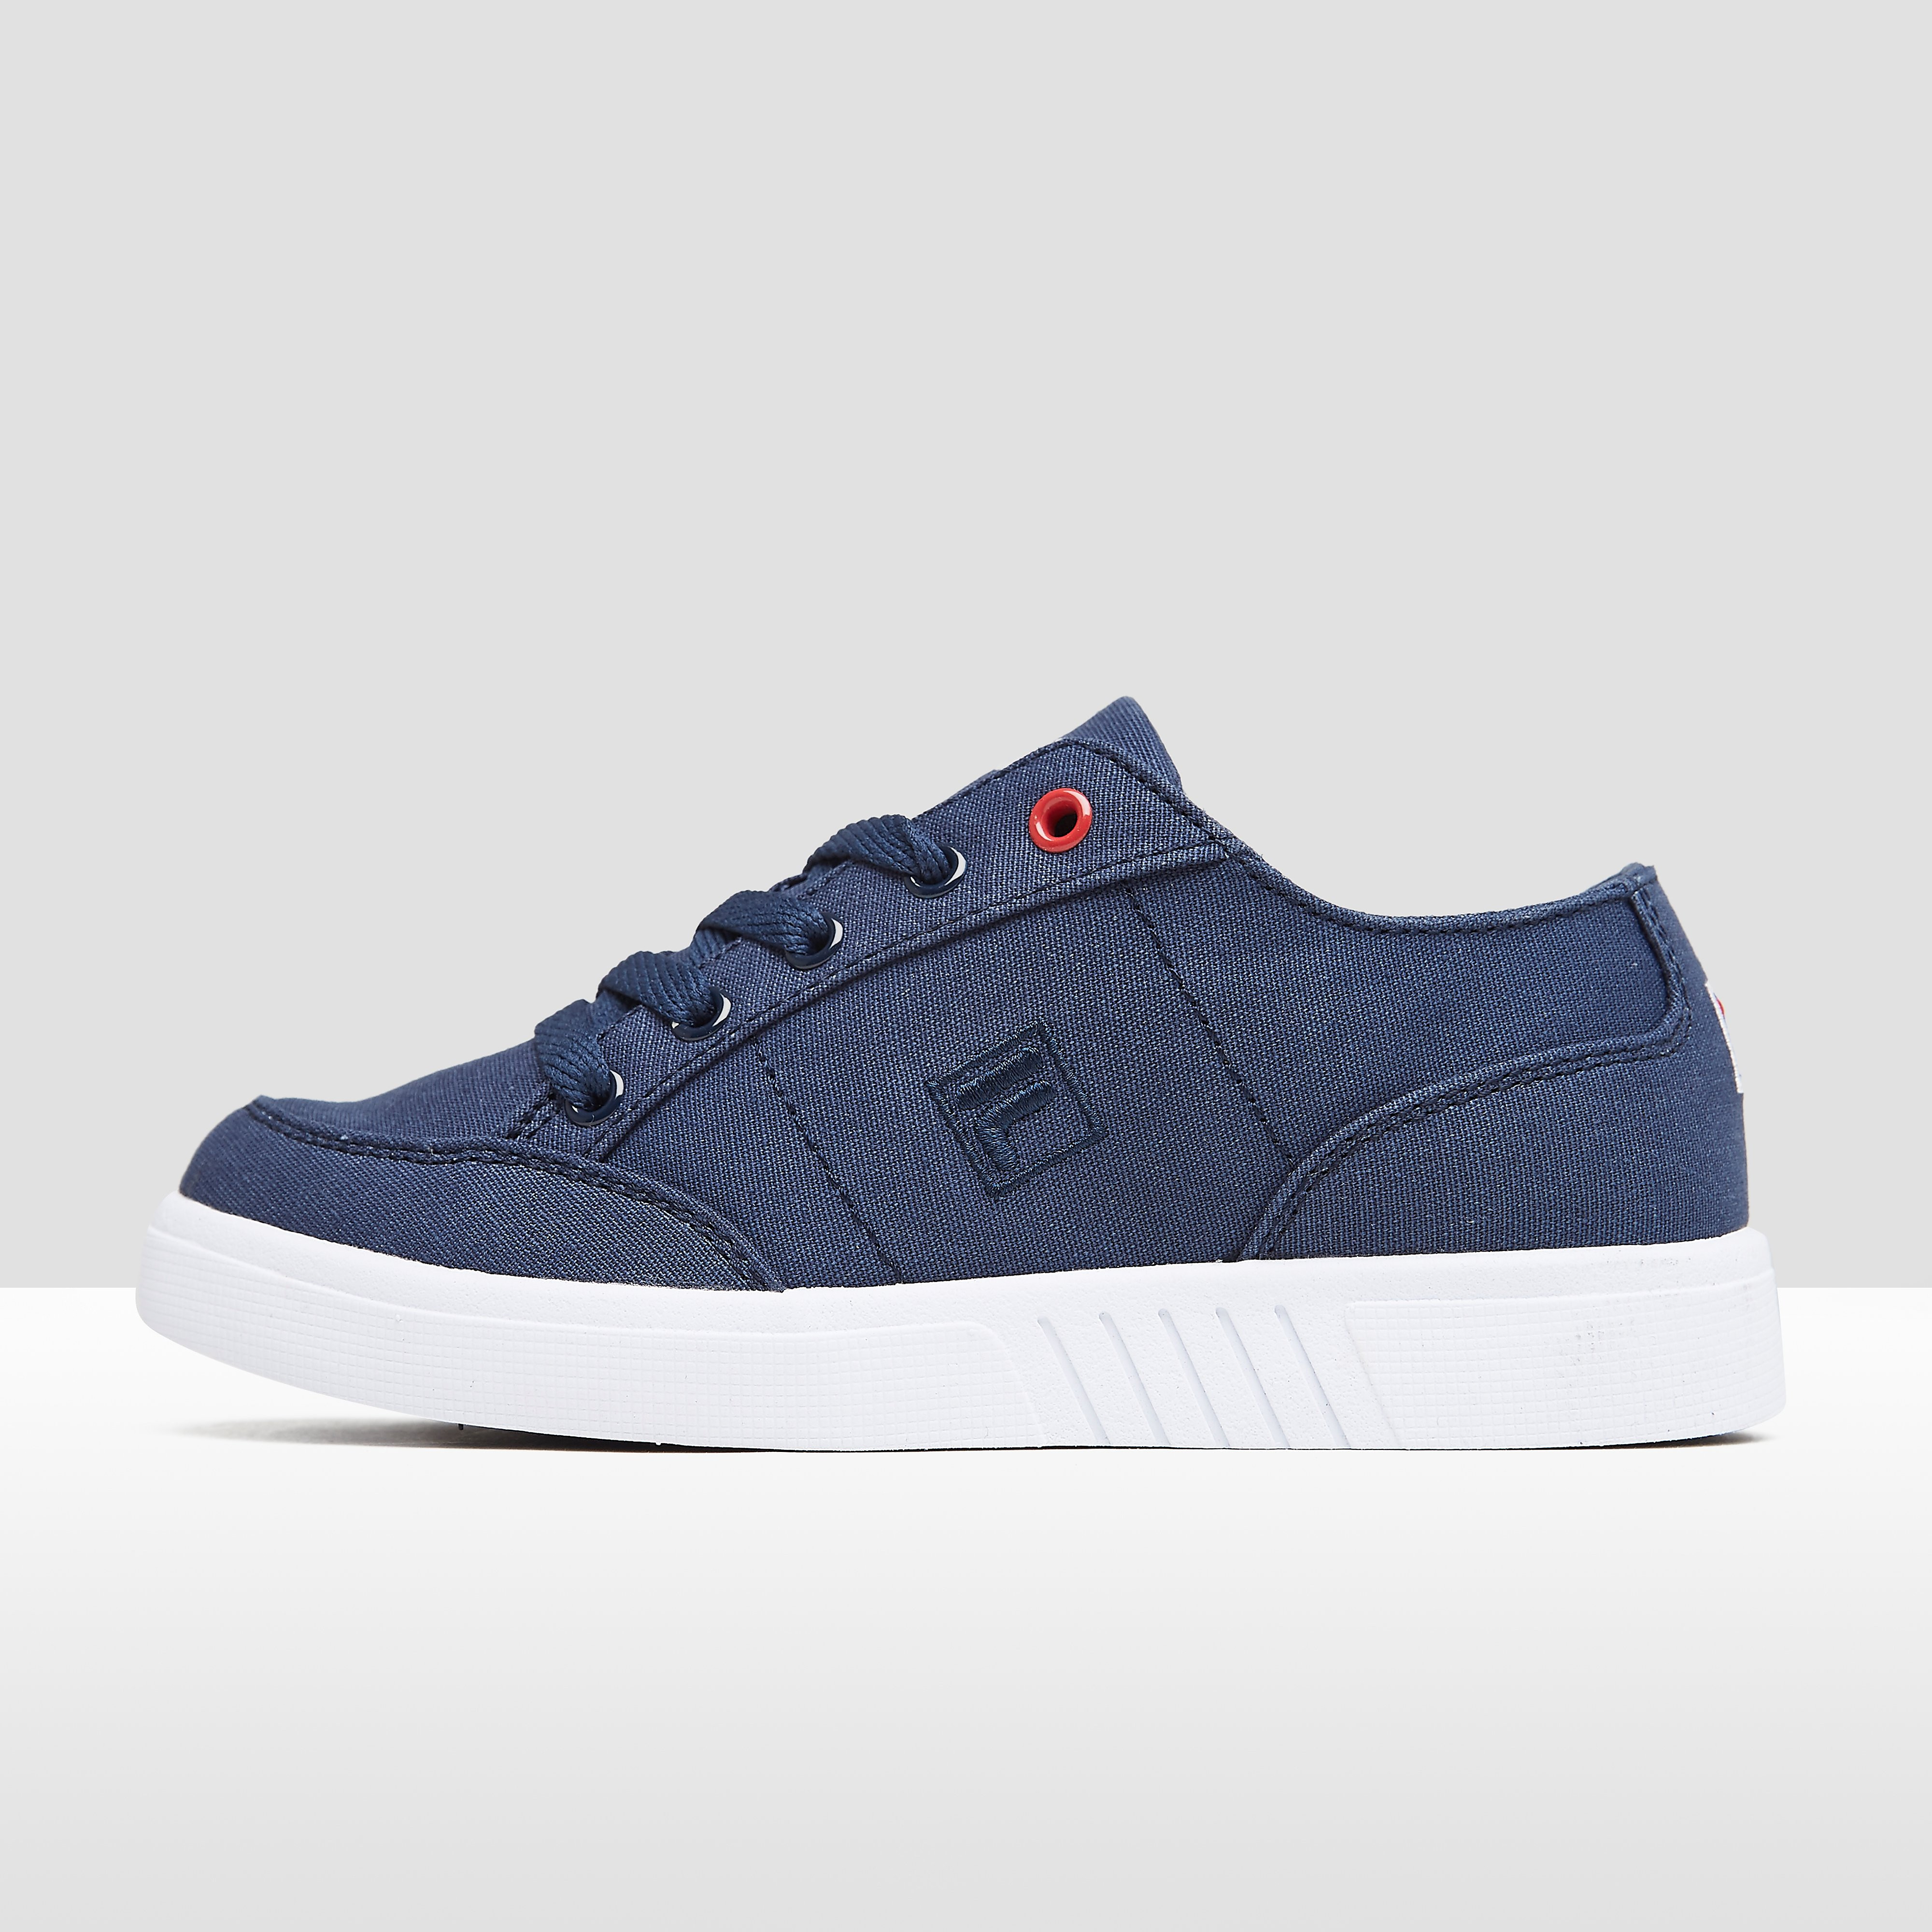 FILA DAKOTA LOW SNEAKERS BLAUW JONGENS